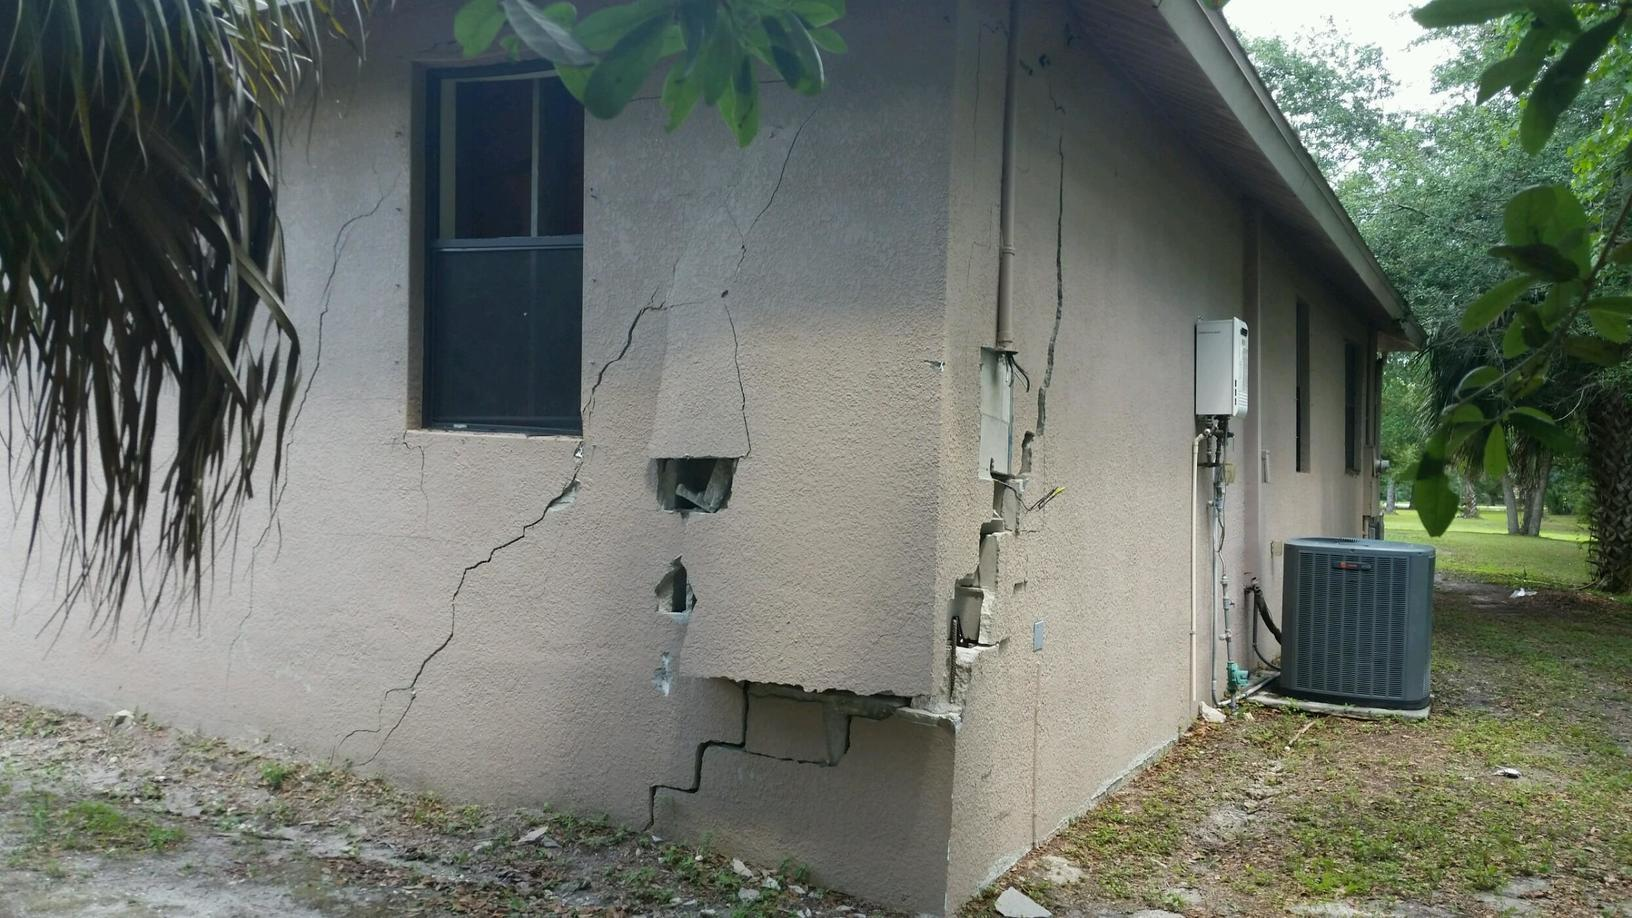 Foundation Wall Collapse